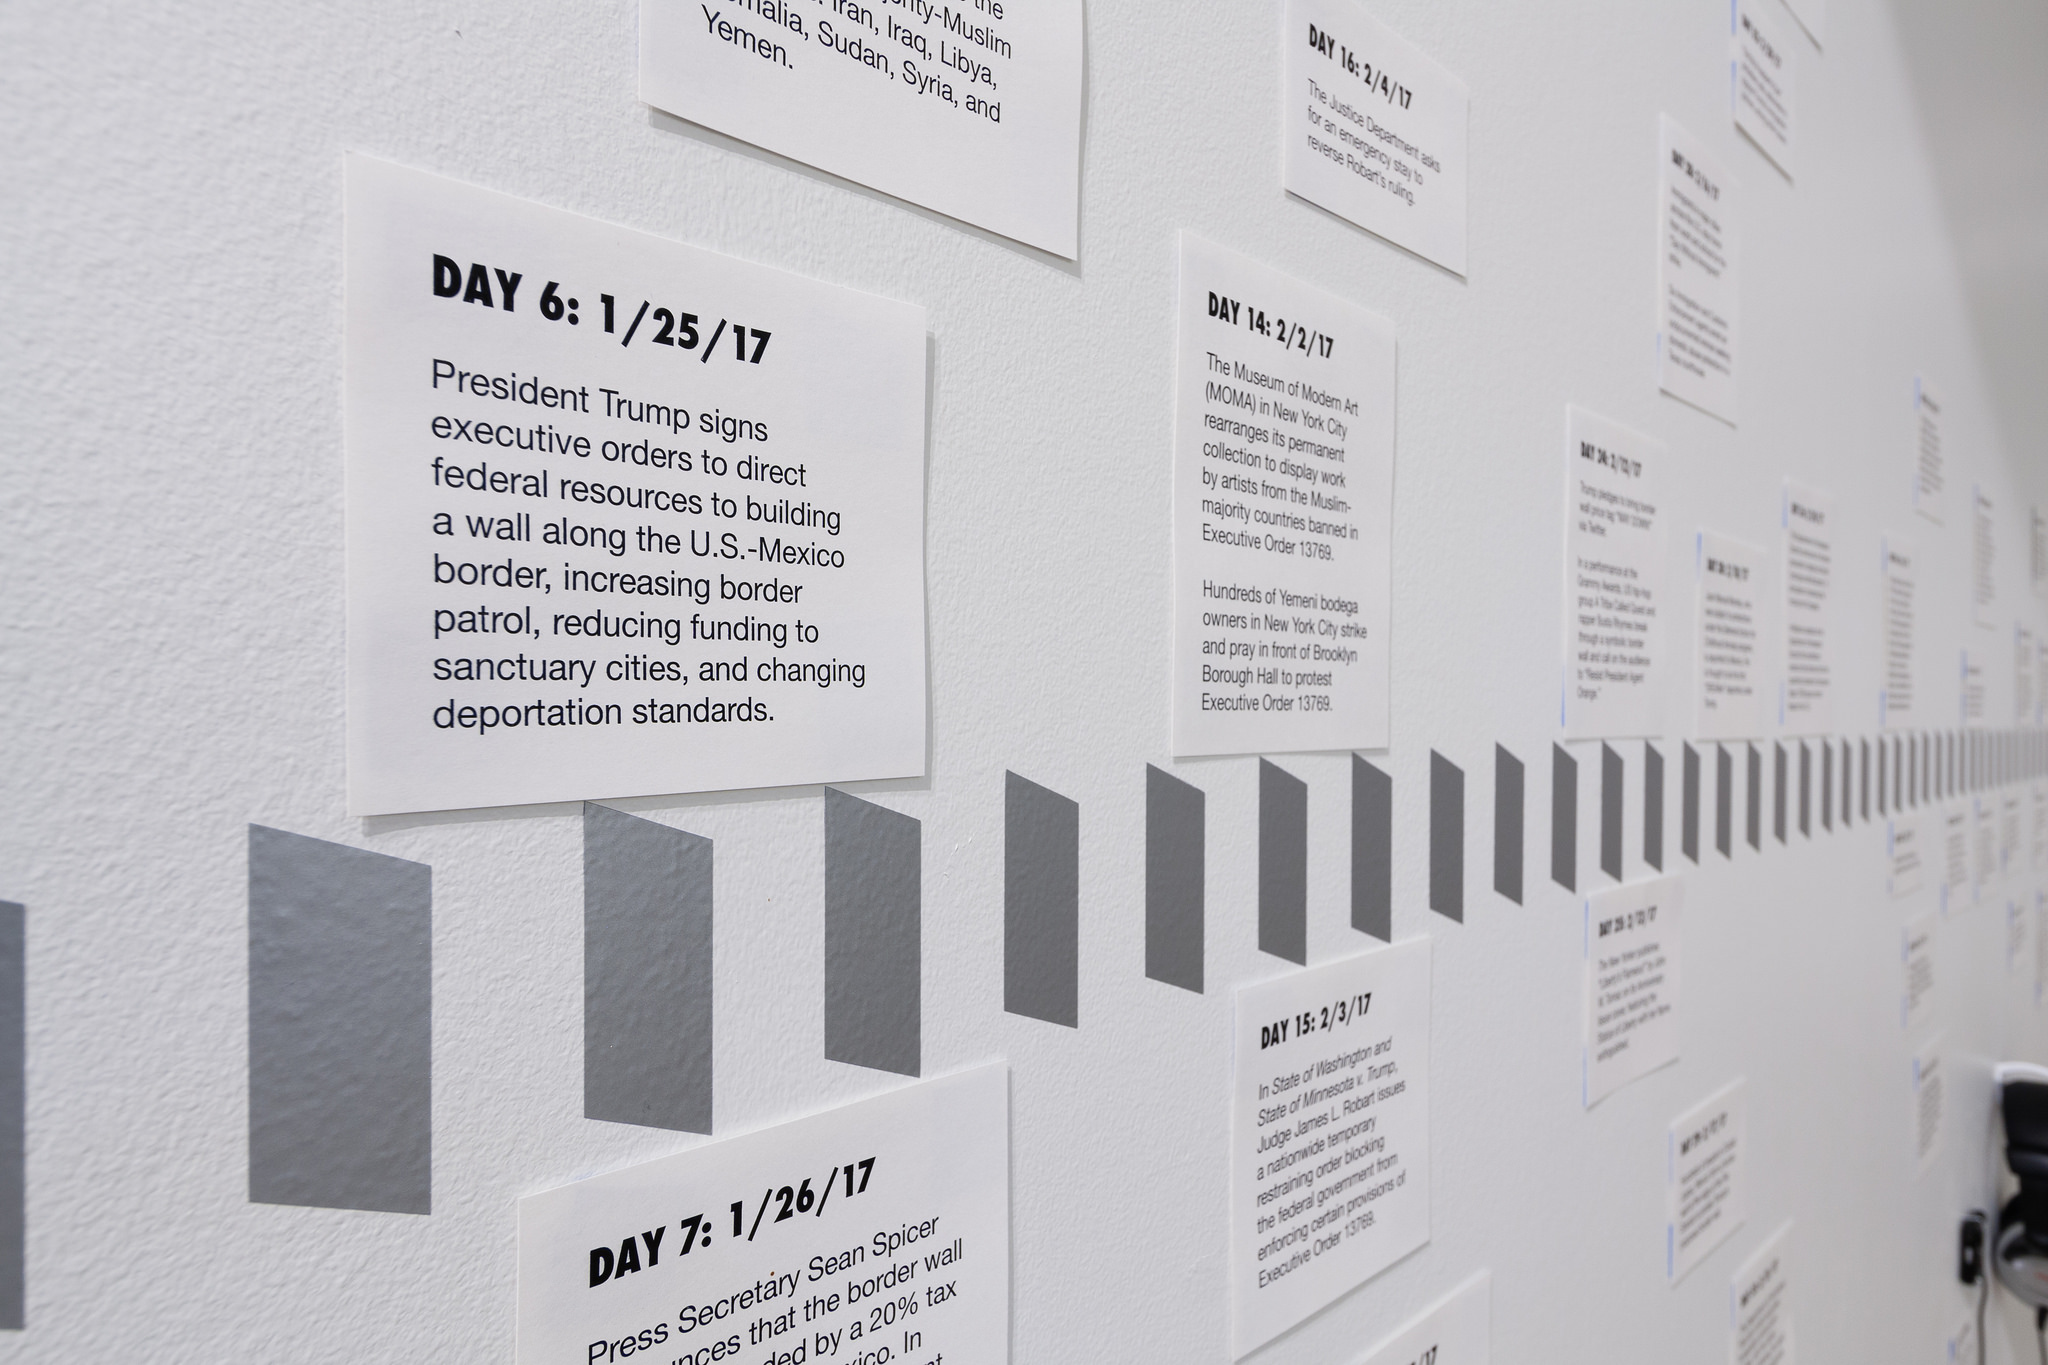 Timeline of the Trump administration's changing immigration policy during his first 100+ days in office.Image by Jerry Mann courtesy of SPACES.